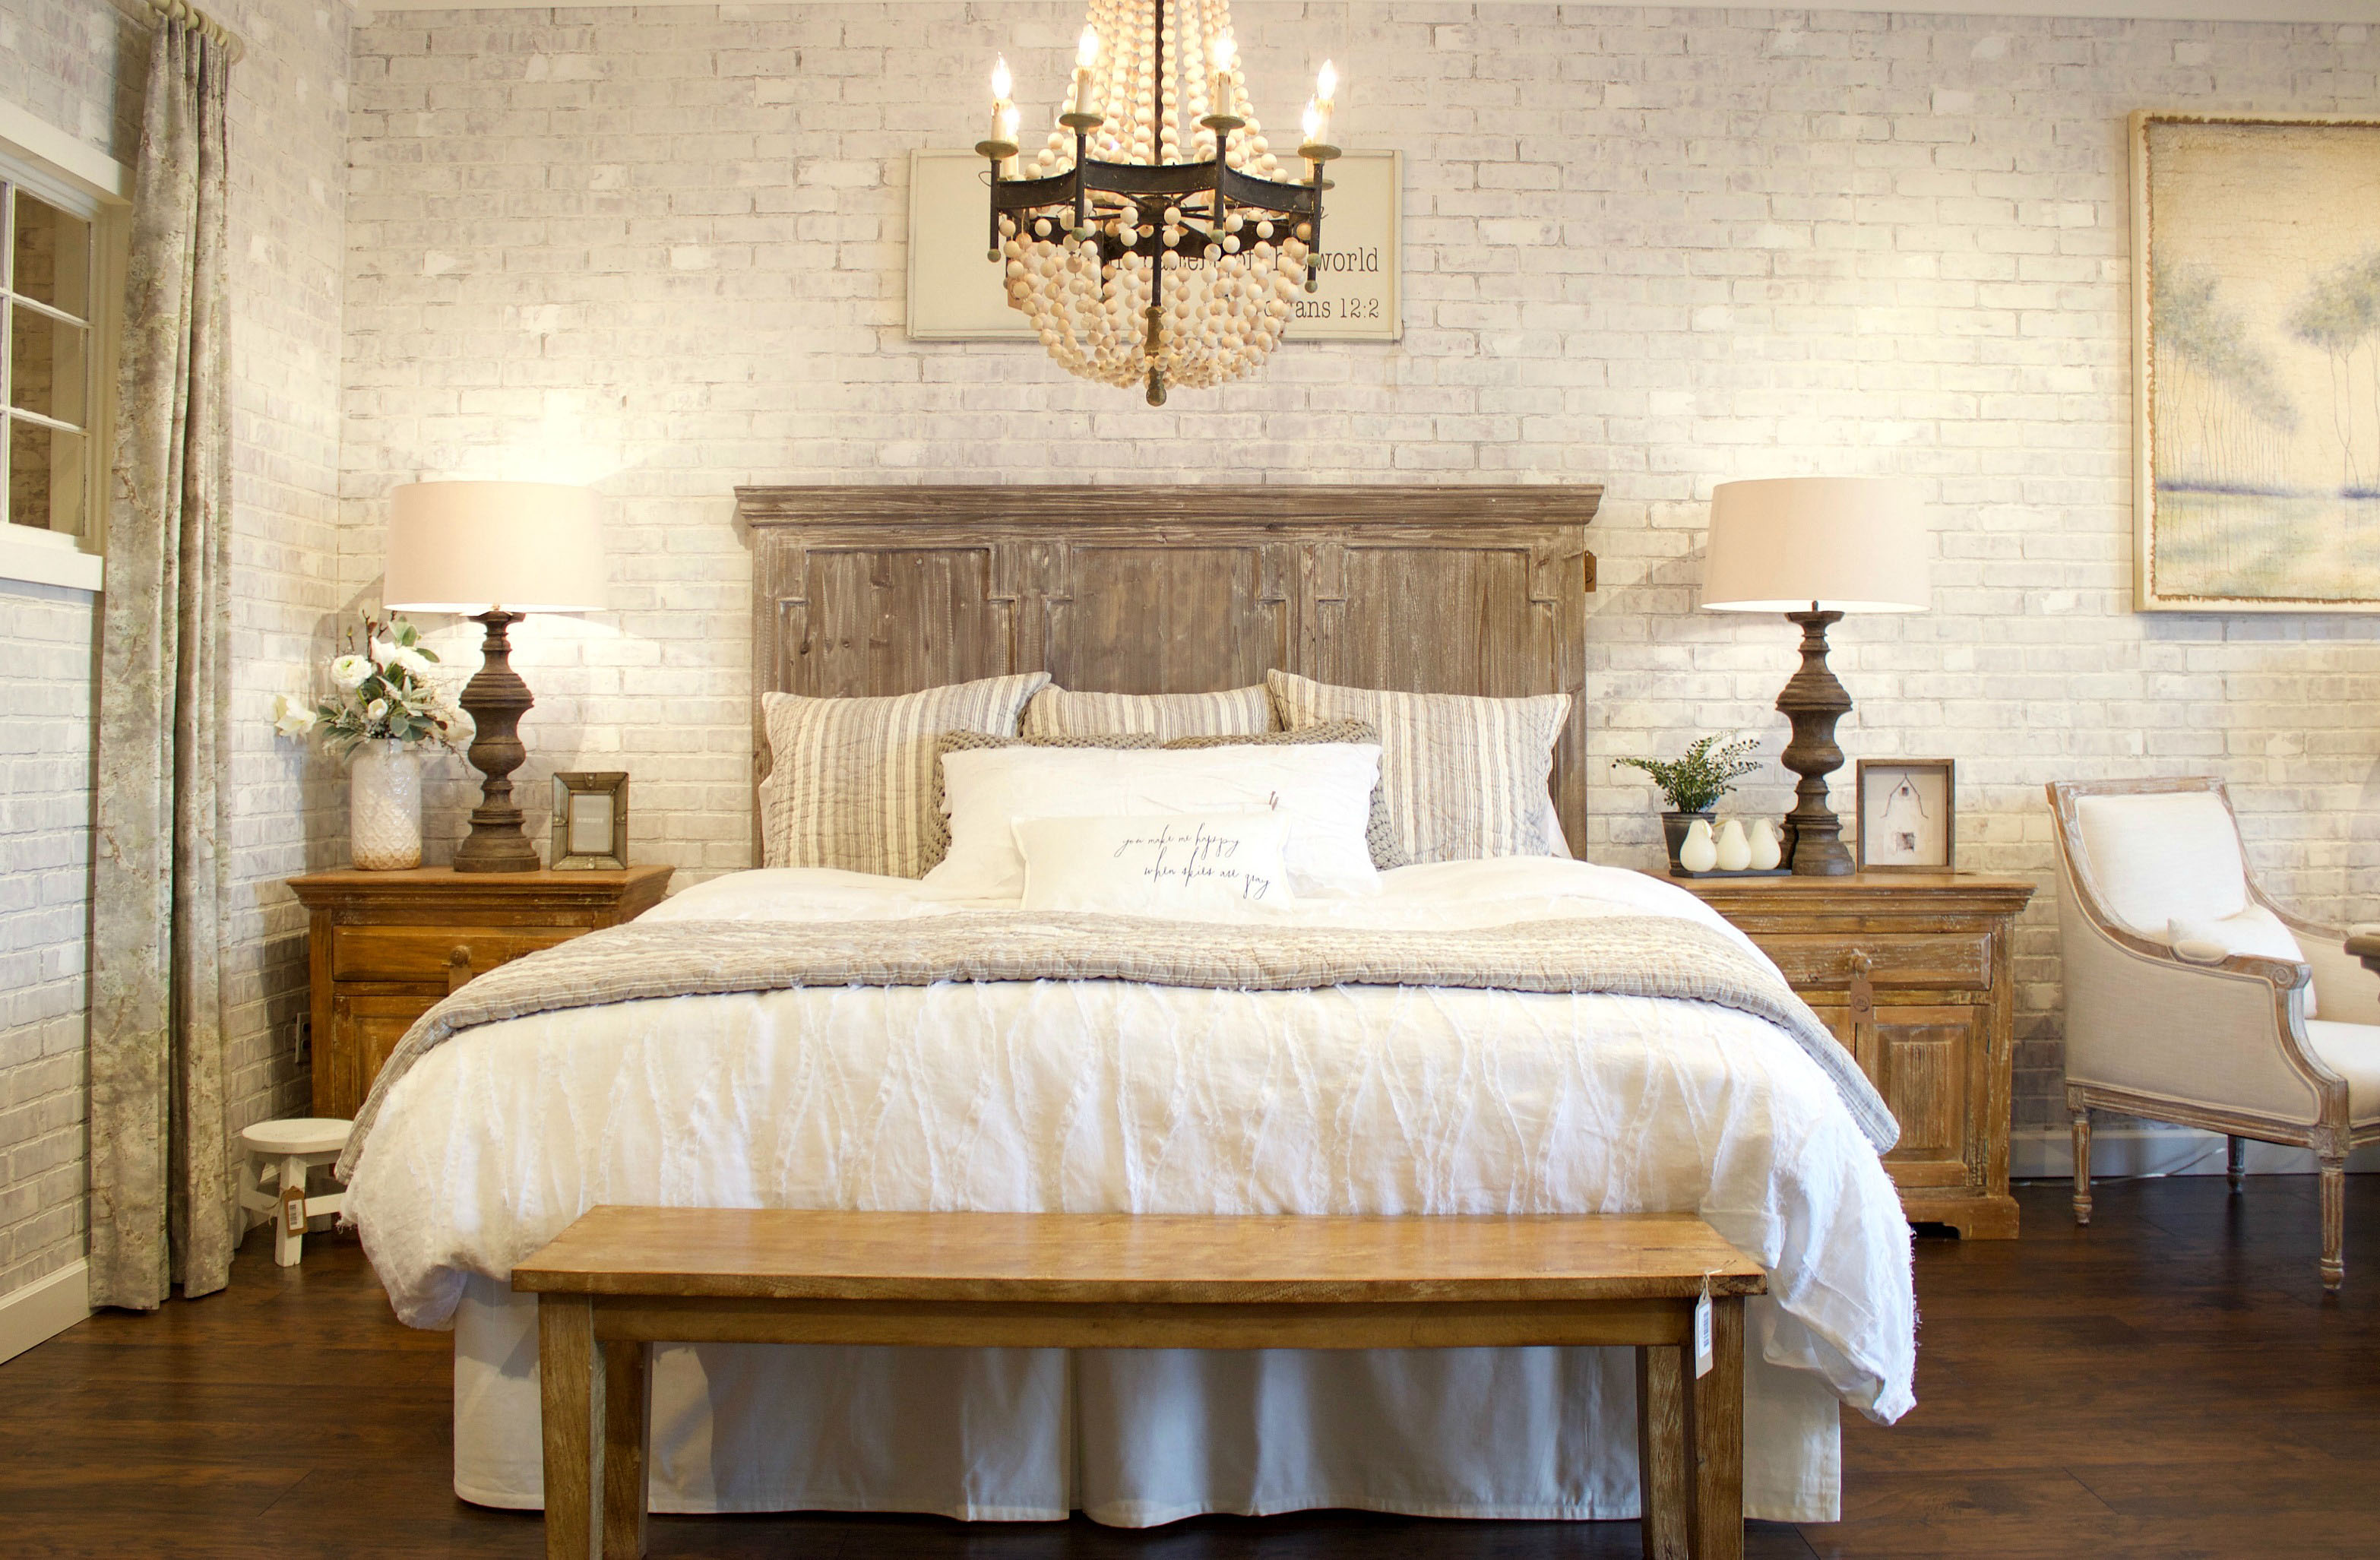 Design Faux Brick Walls faux brick wall created from paneling jennifer decorates